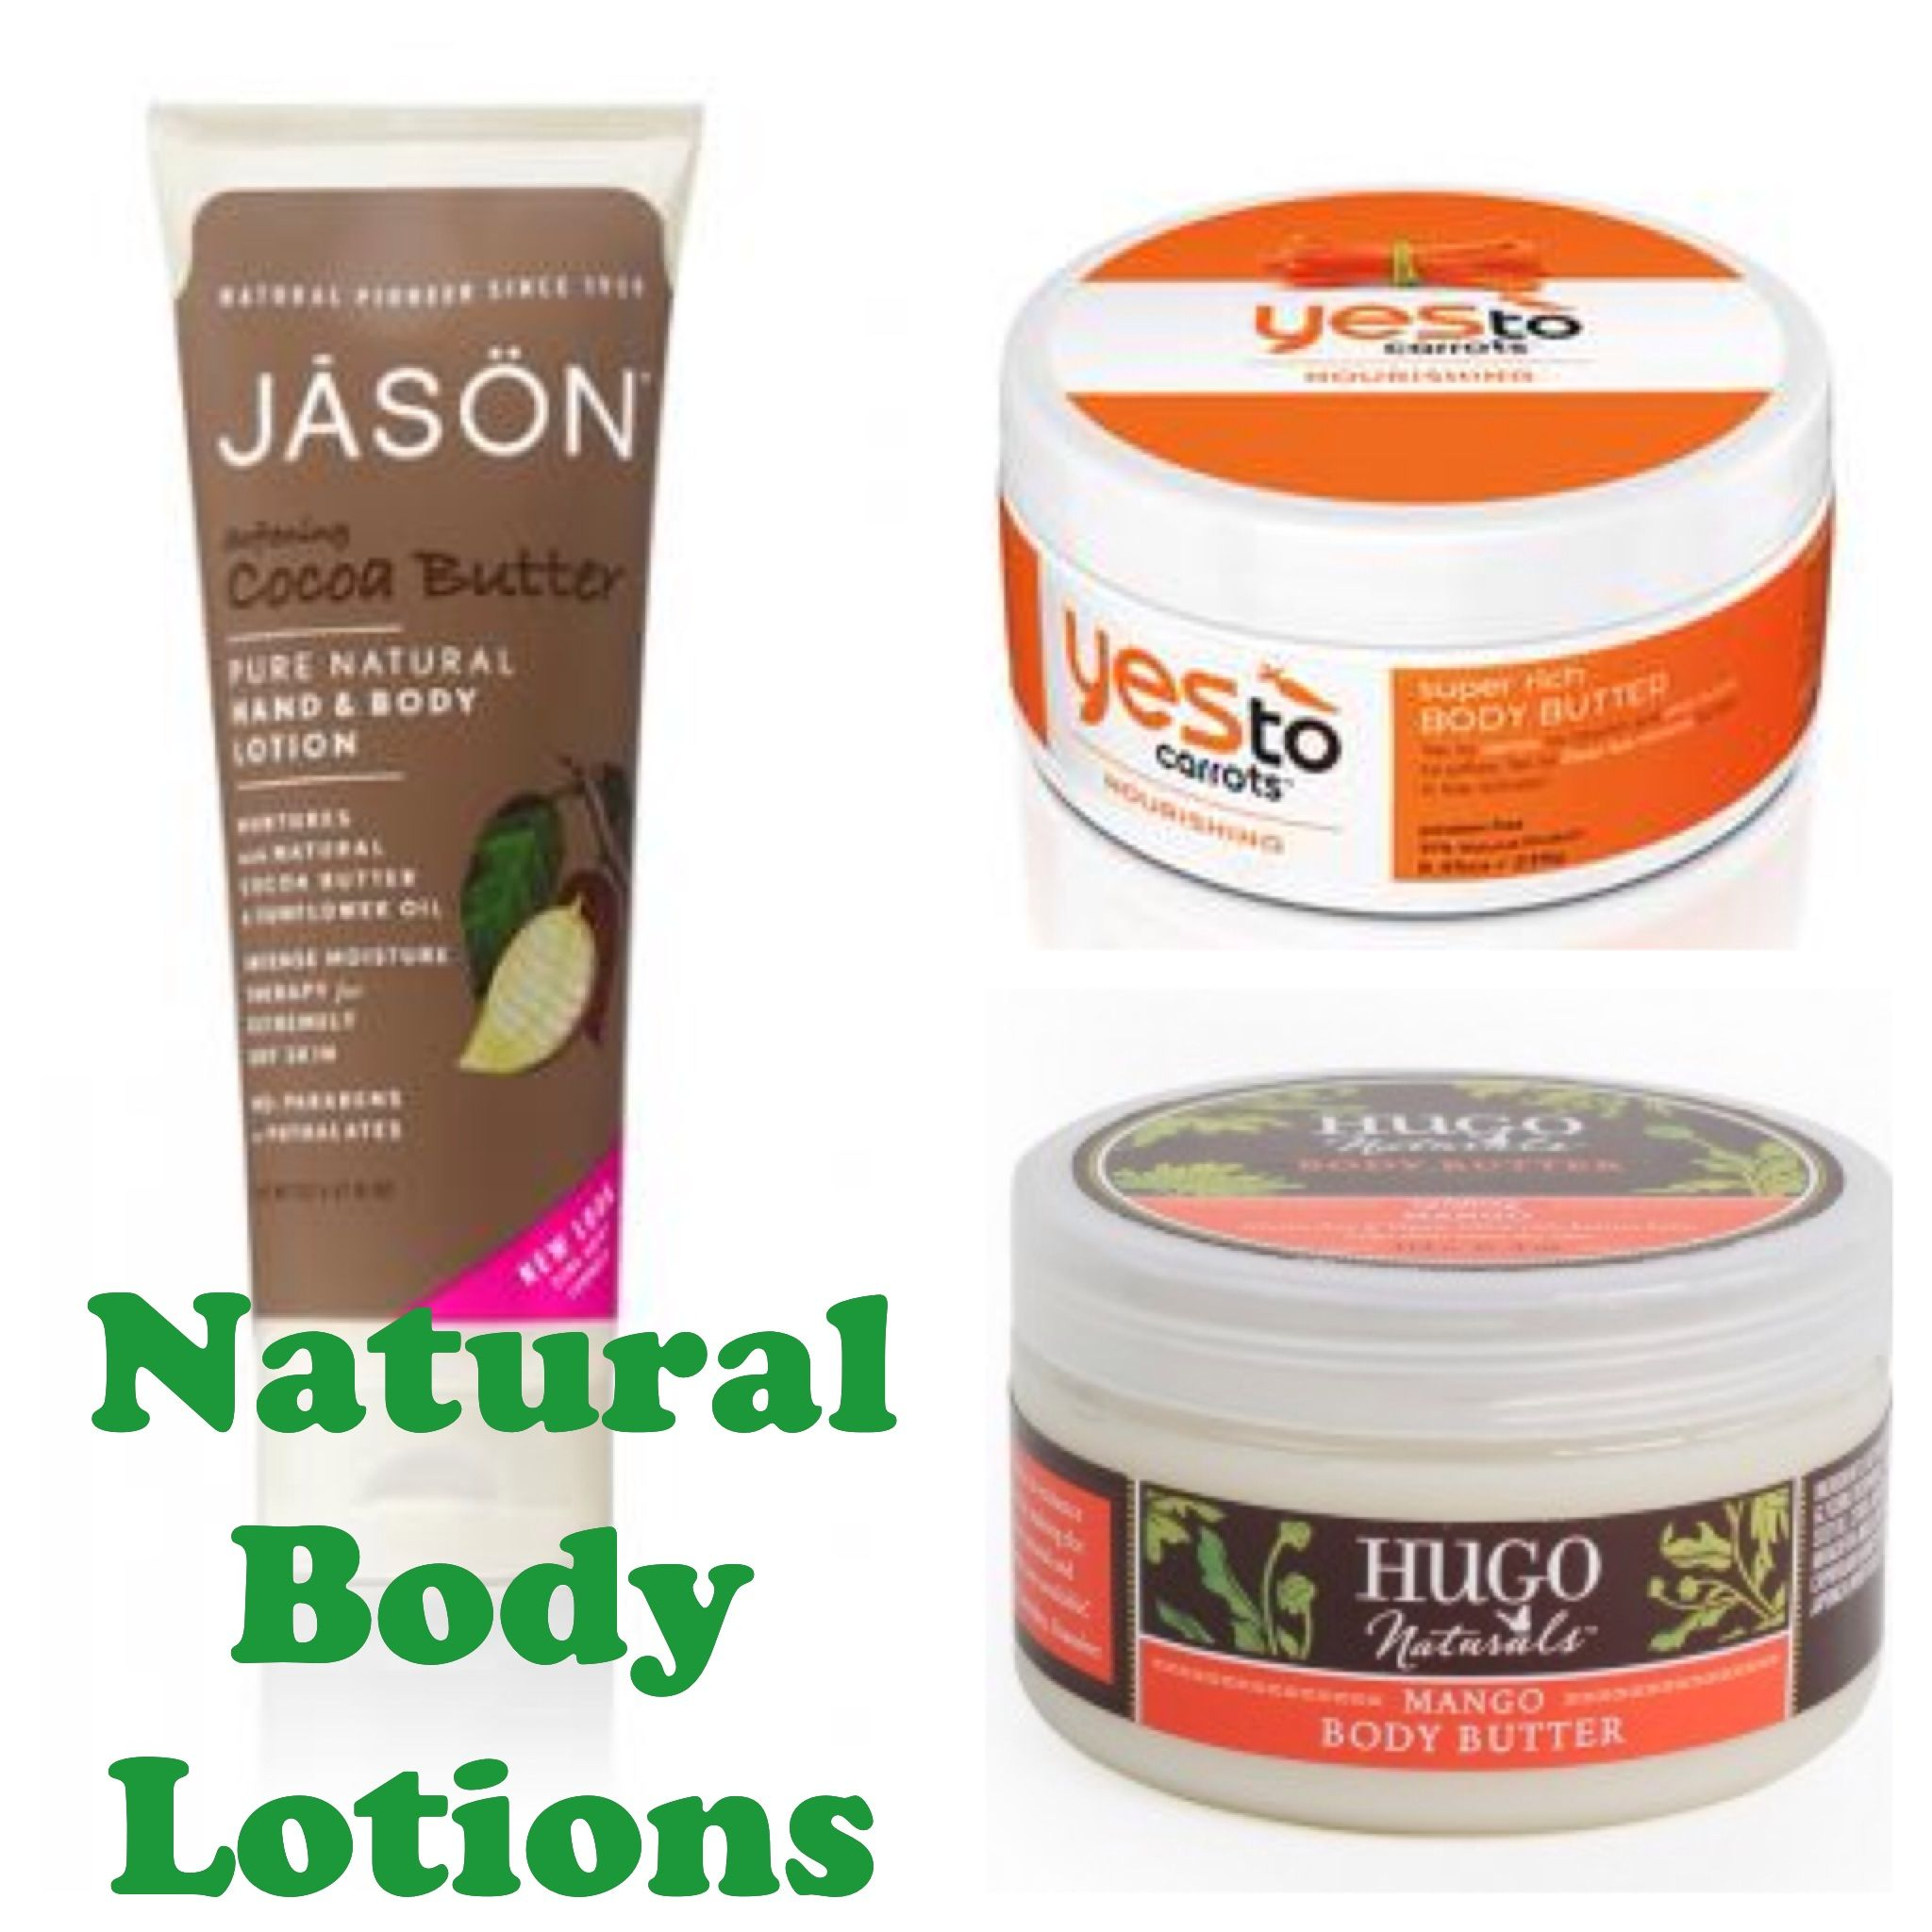 8 Affordable And Natural Body Lotions Your Skin Is Craving Right